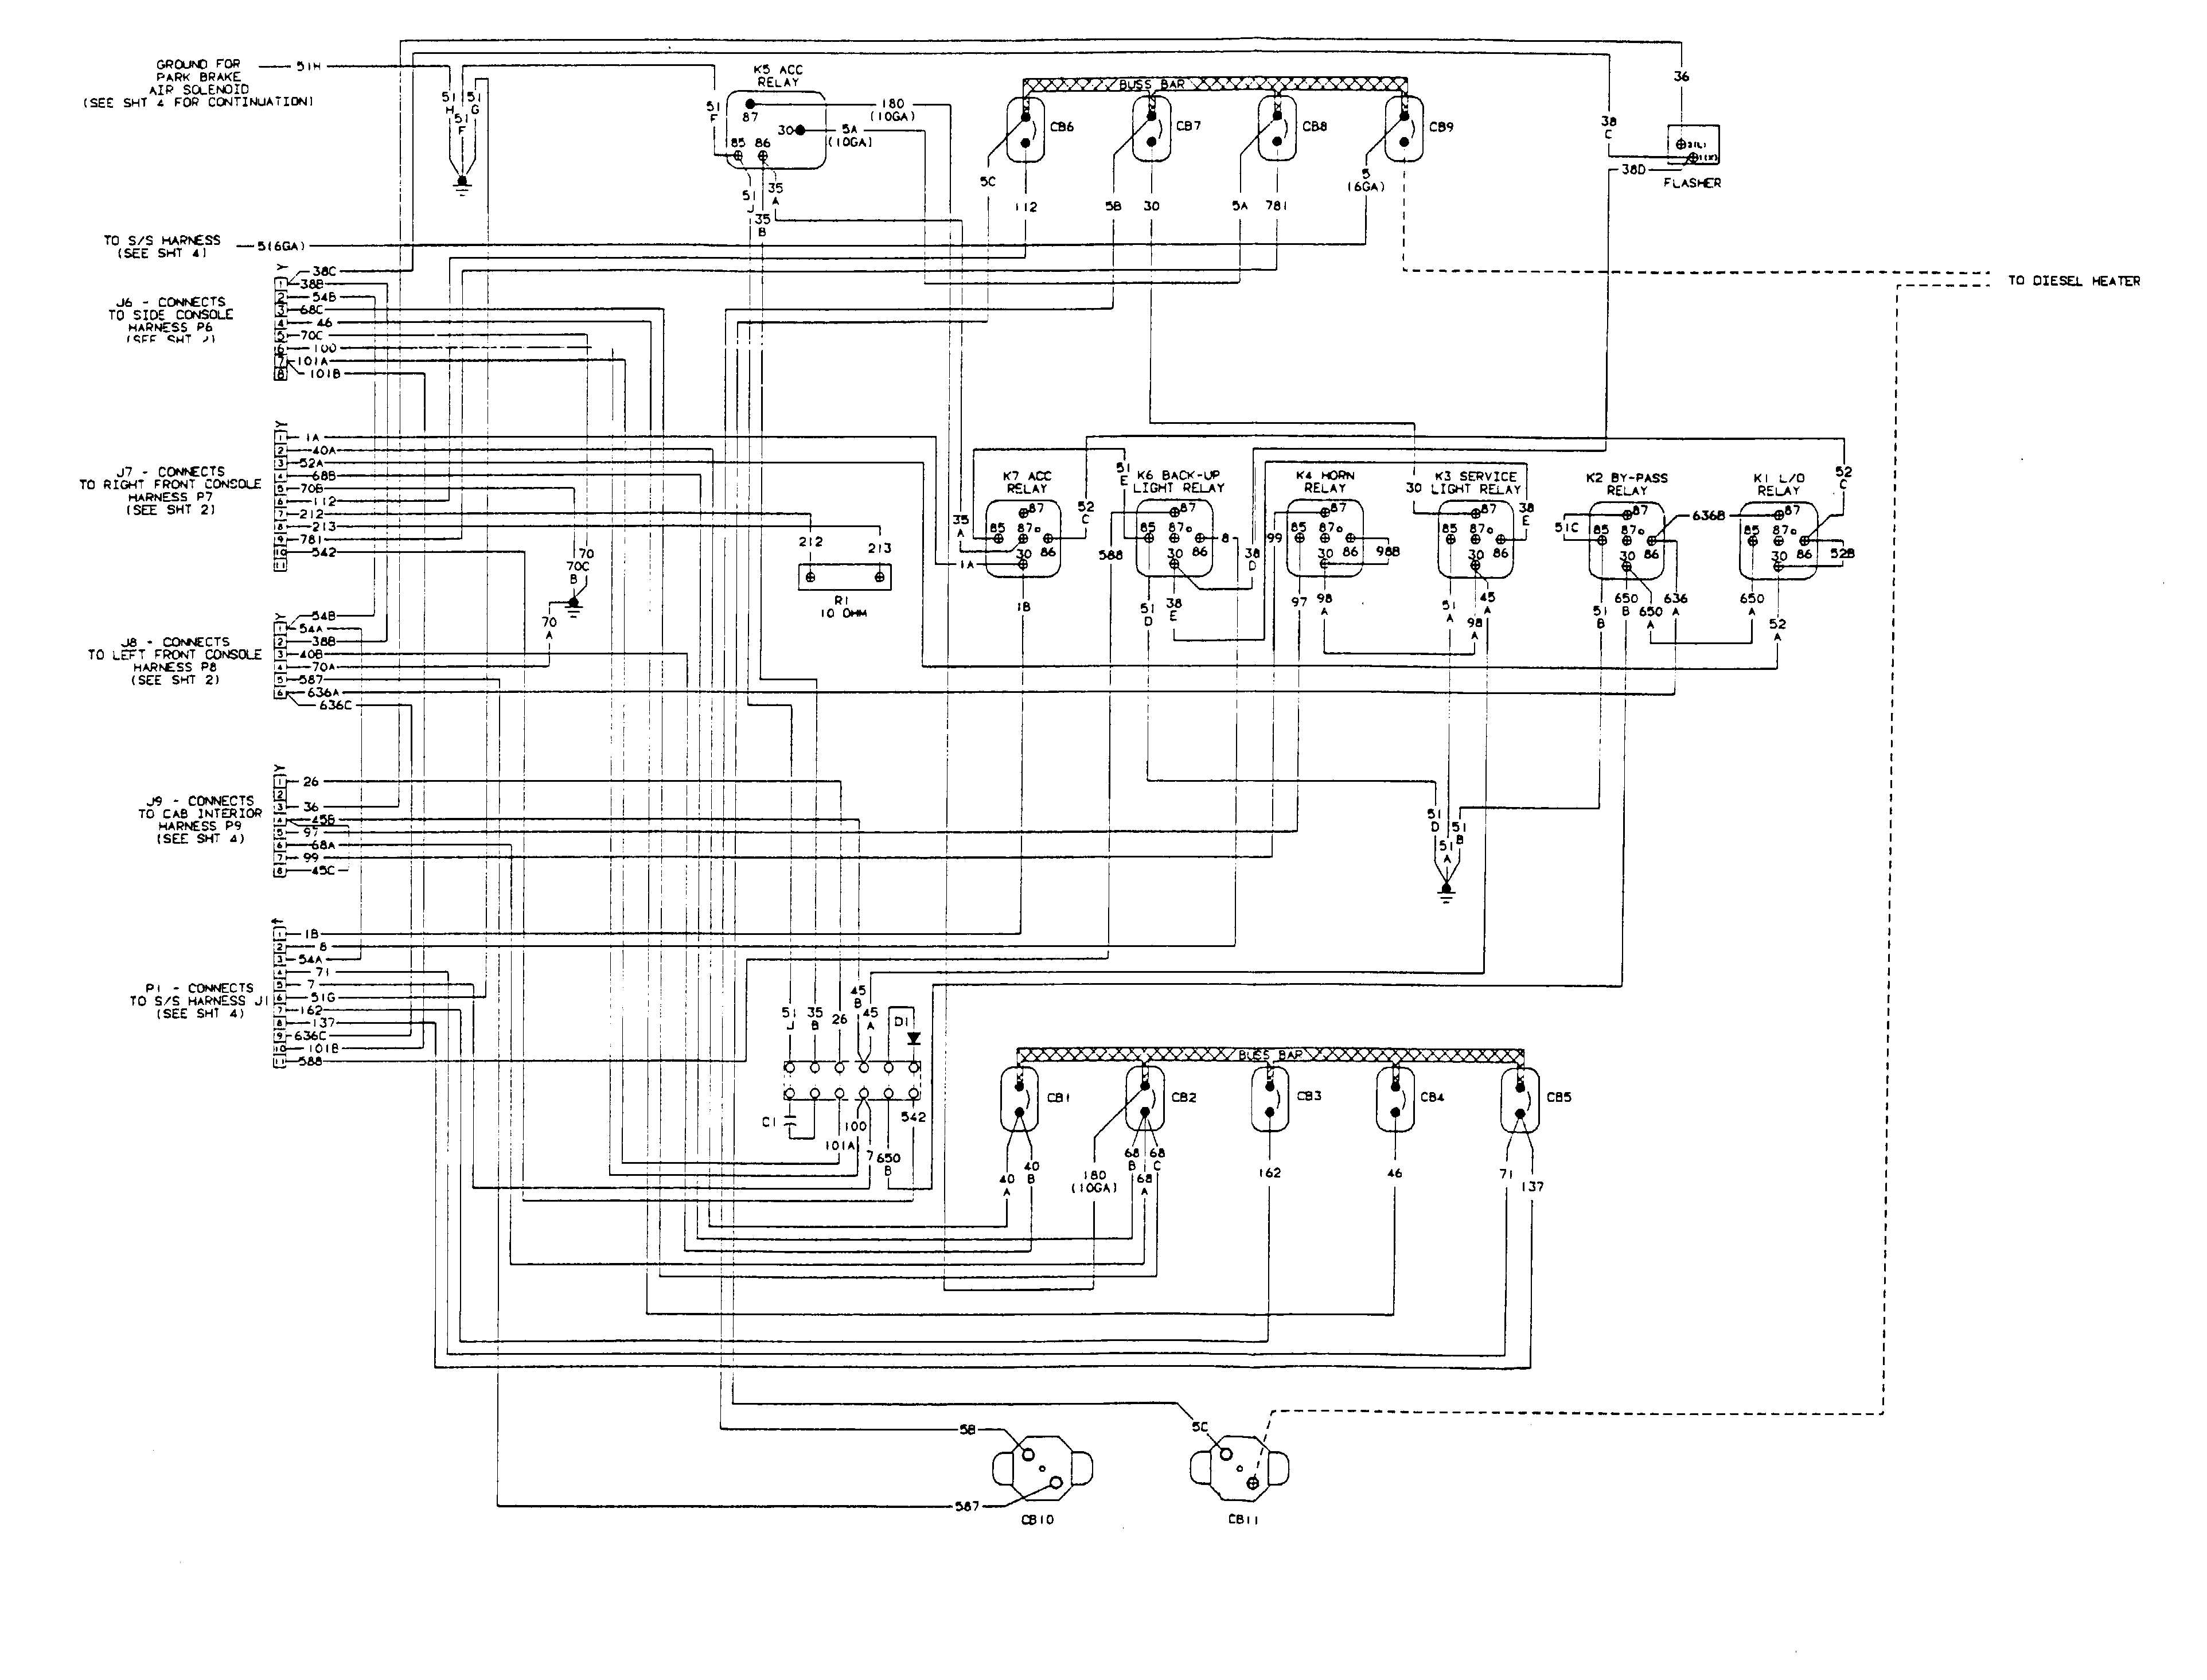 overhead crane wiring diagram Collection-Overhead Crane Electrical Engine Wiring Diagram Tm 5 3810 306 20 543 0 For 12-m